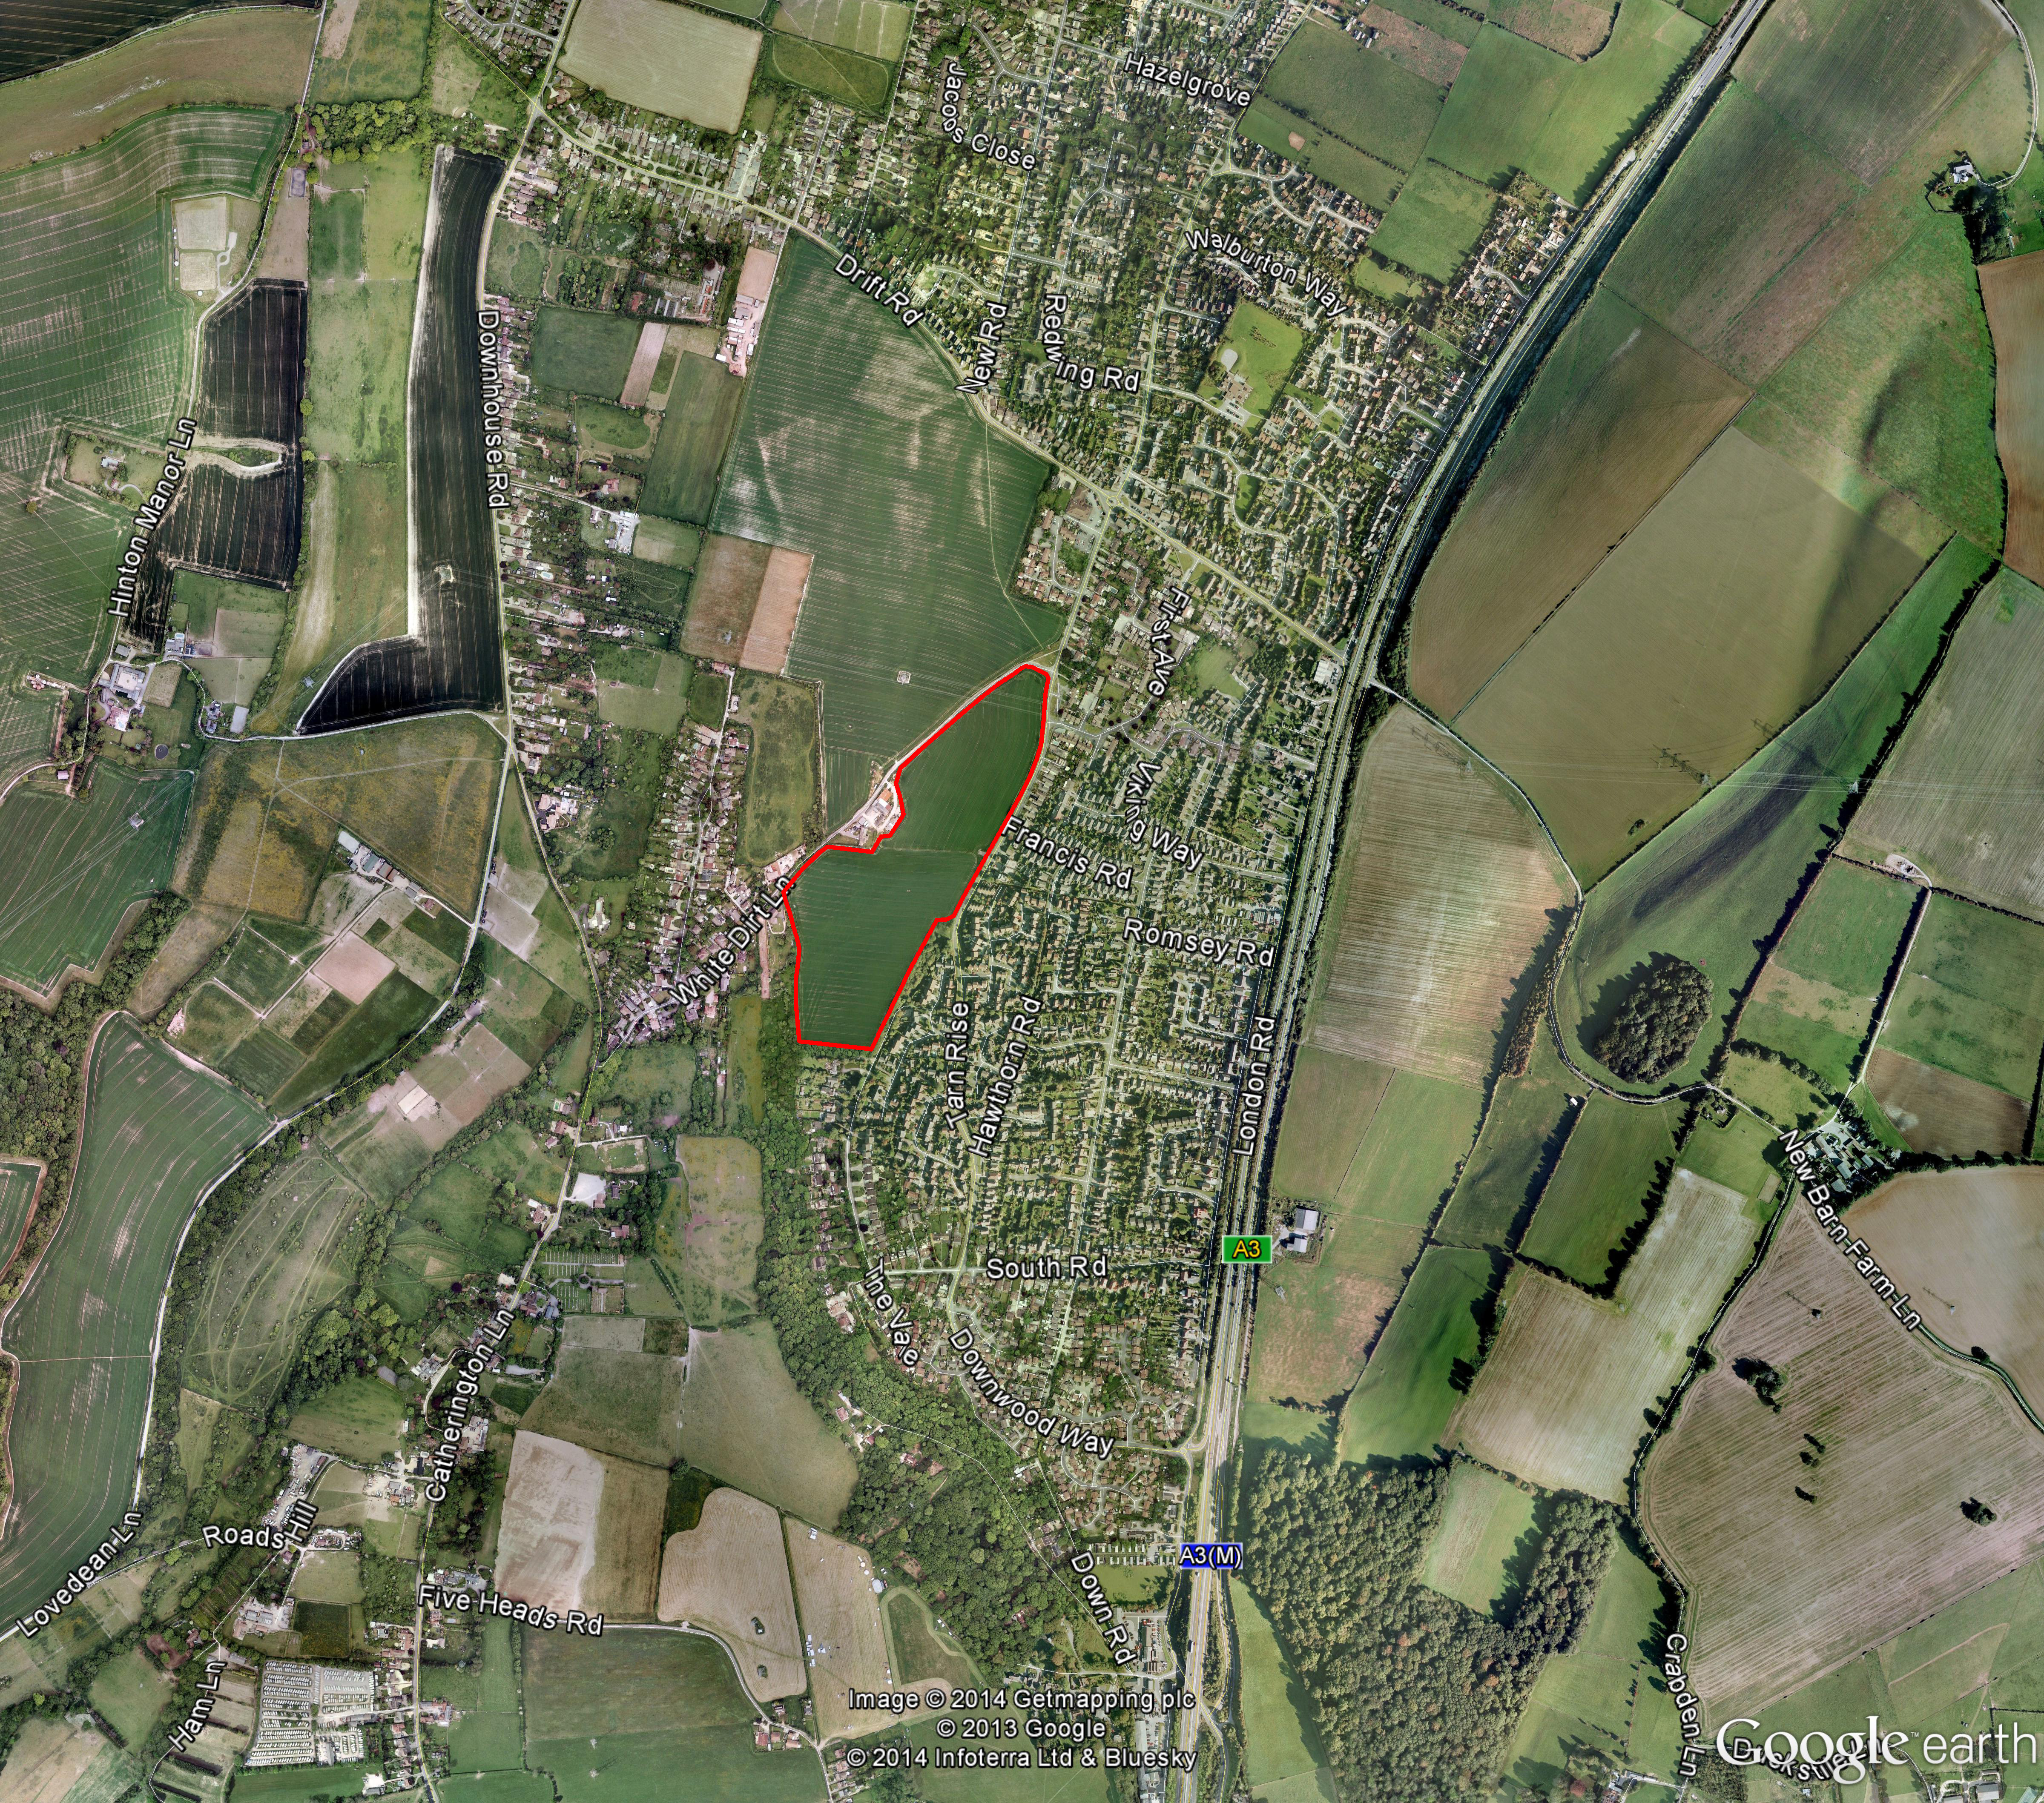 Clanfield aerial plan